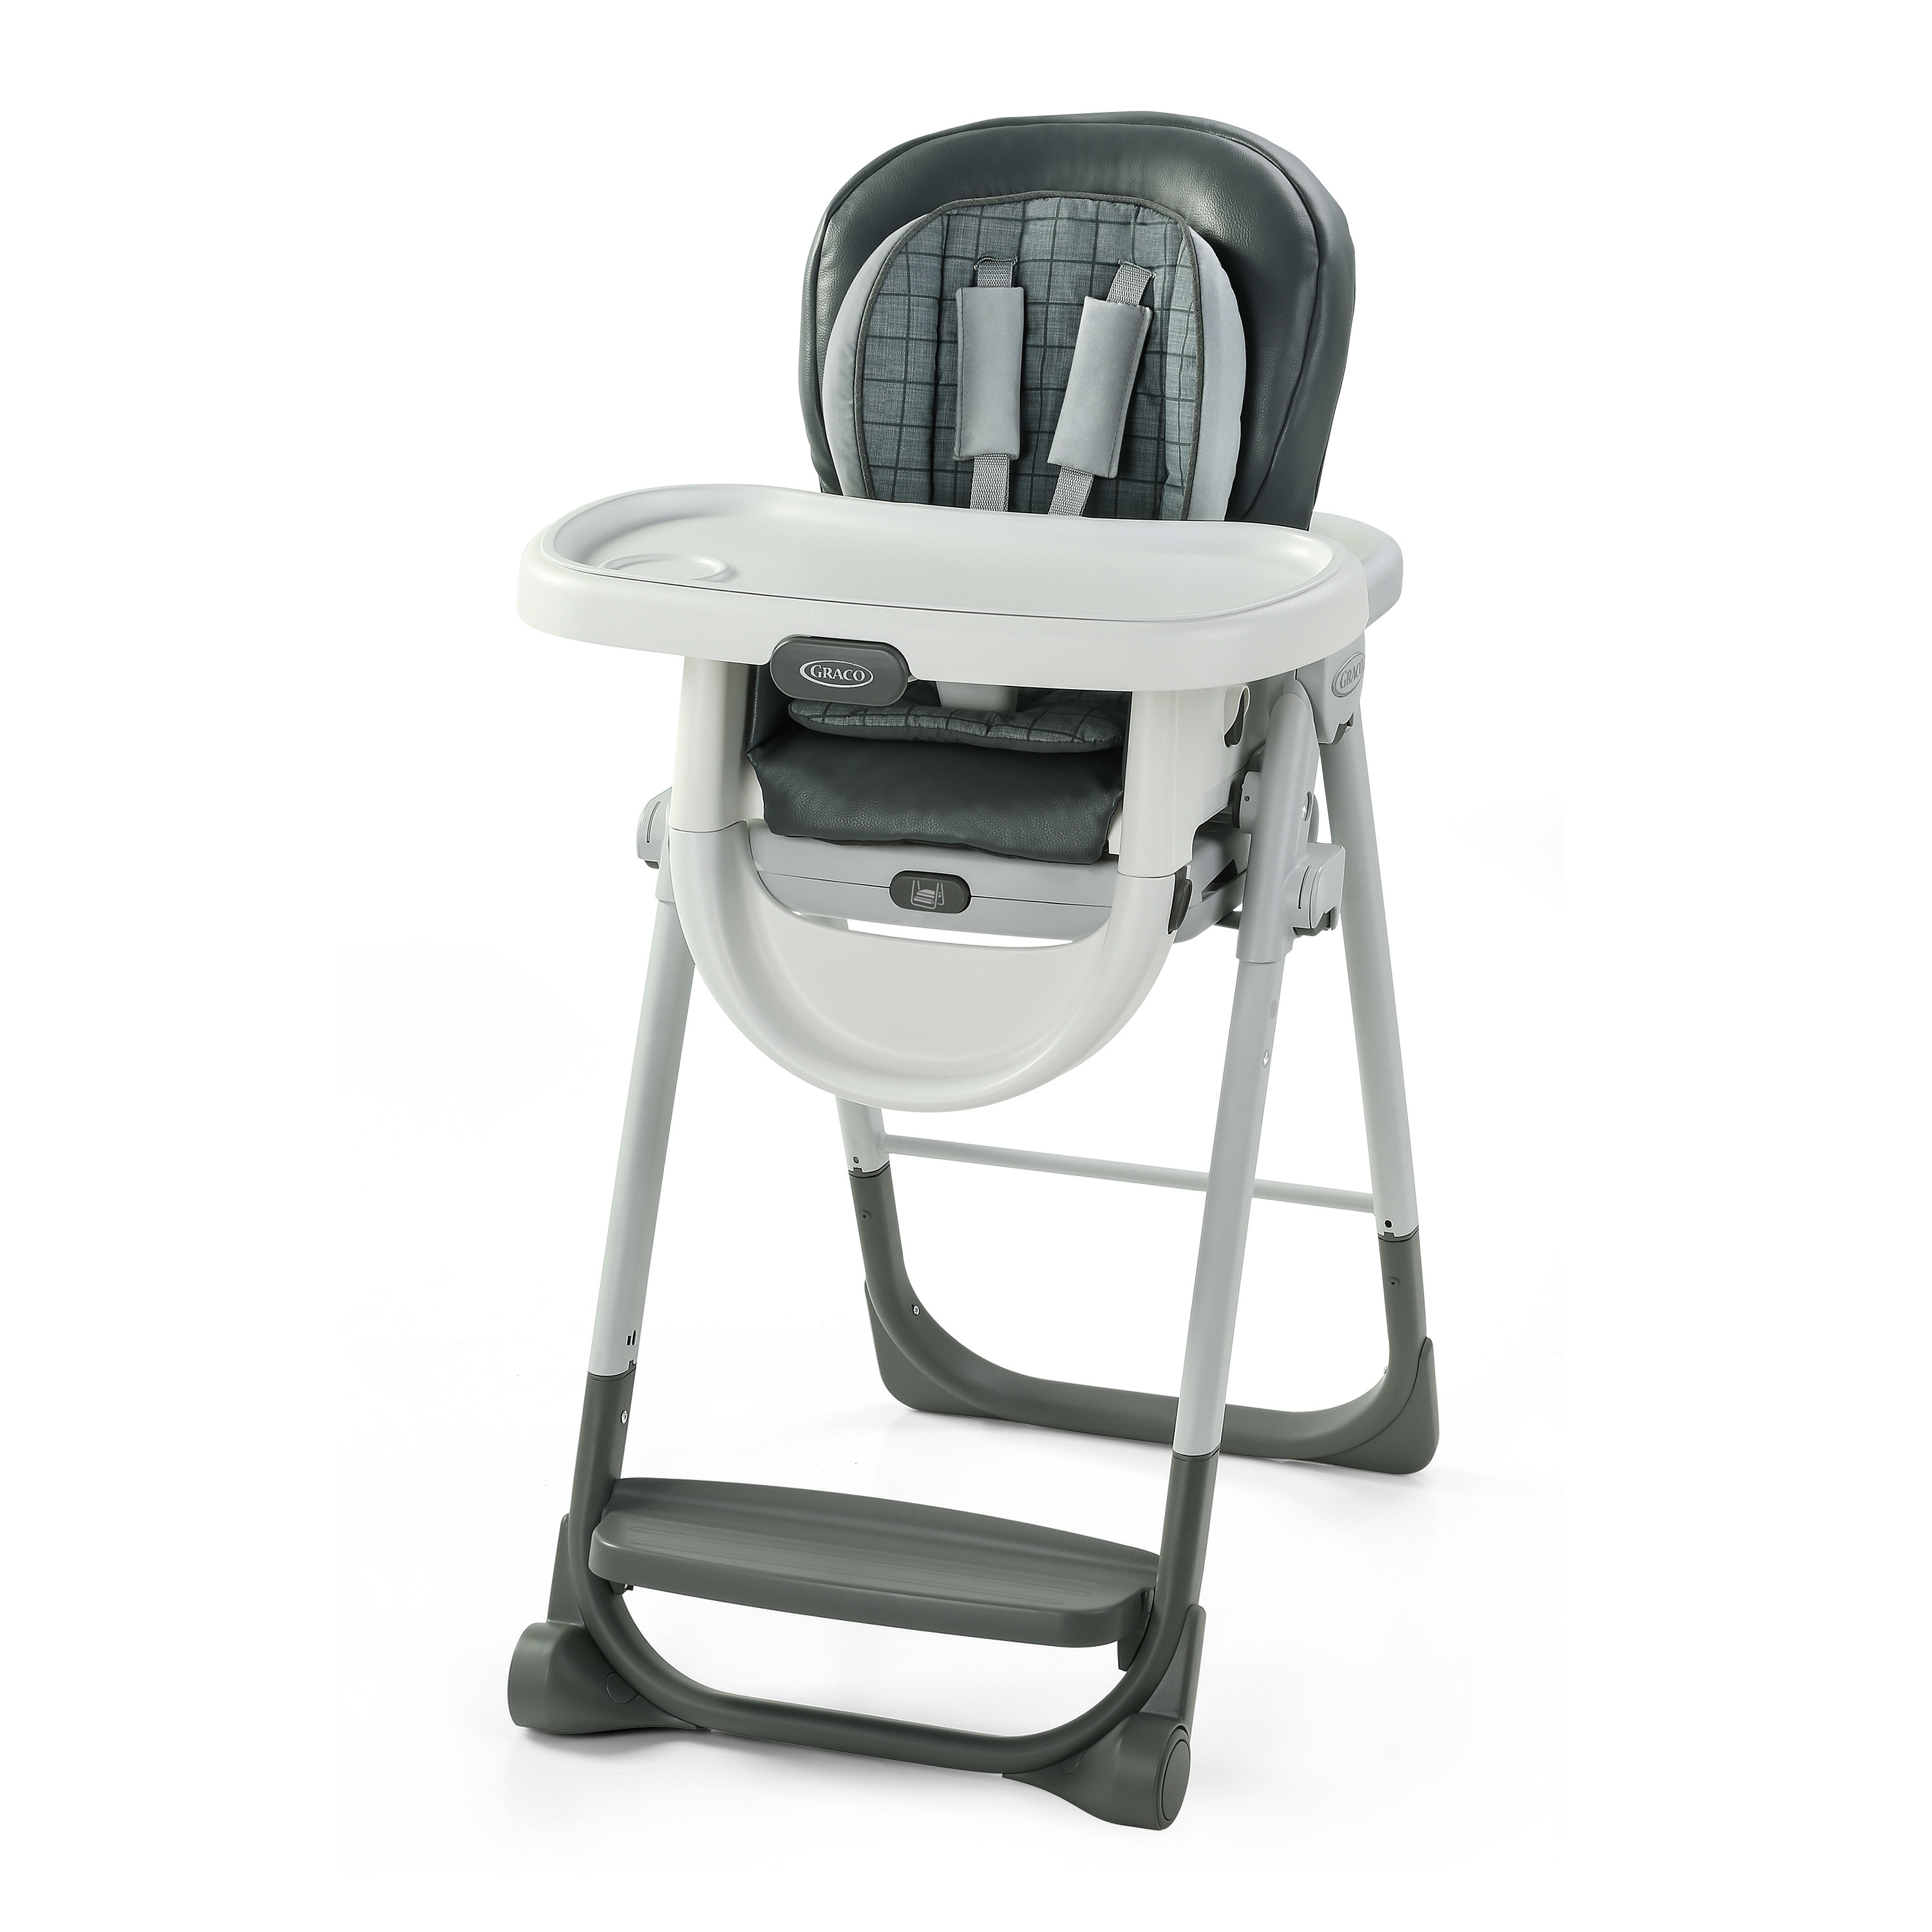 a grey and white high chair